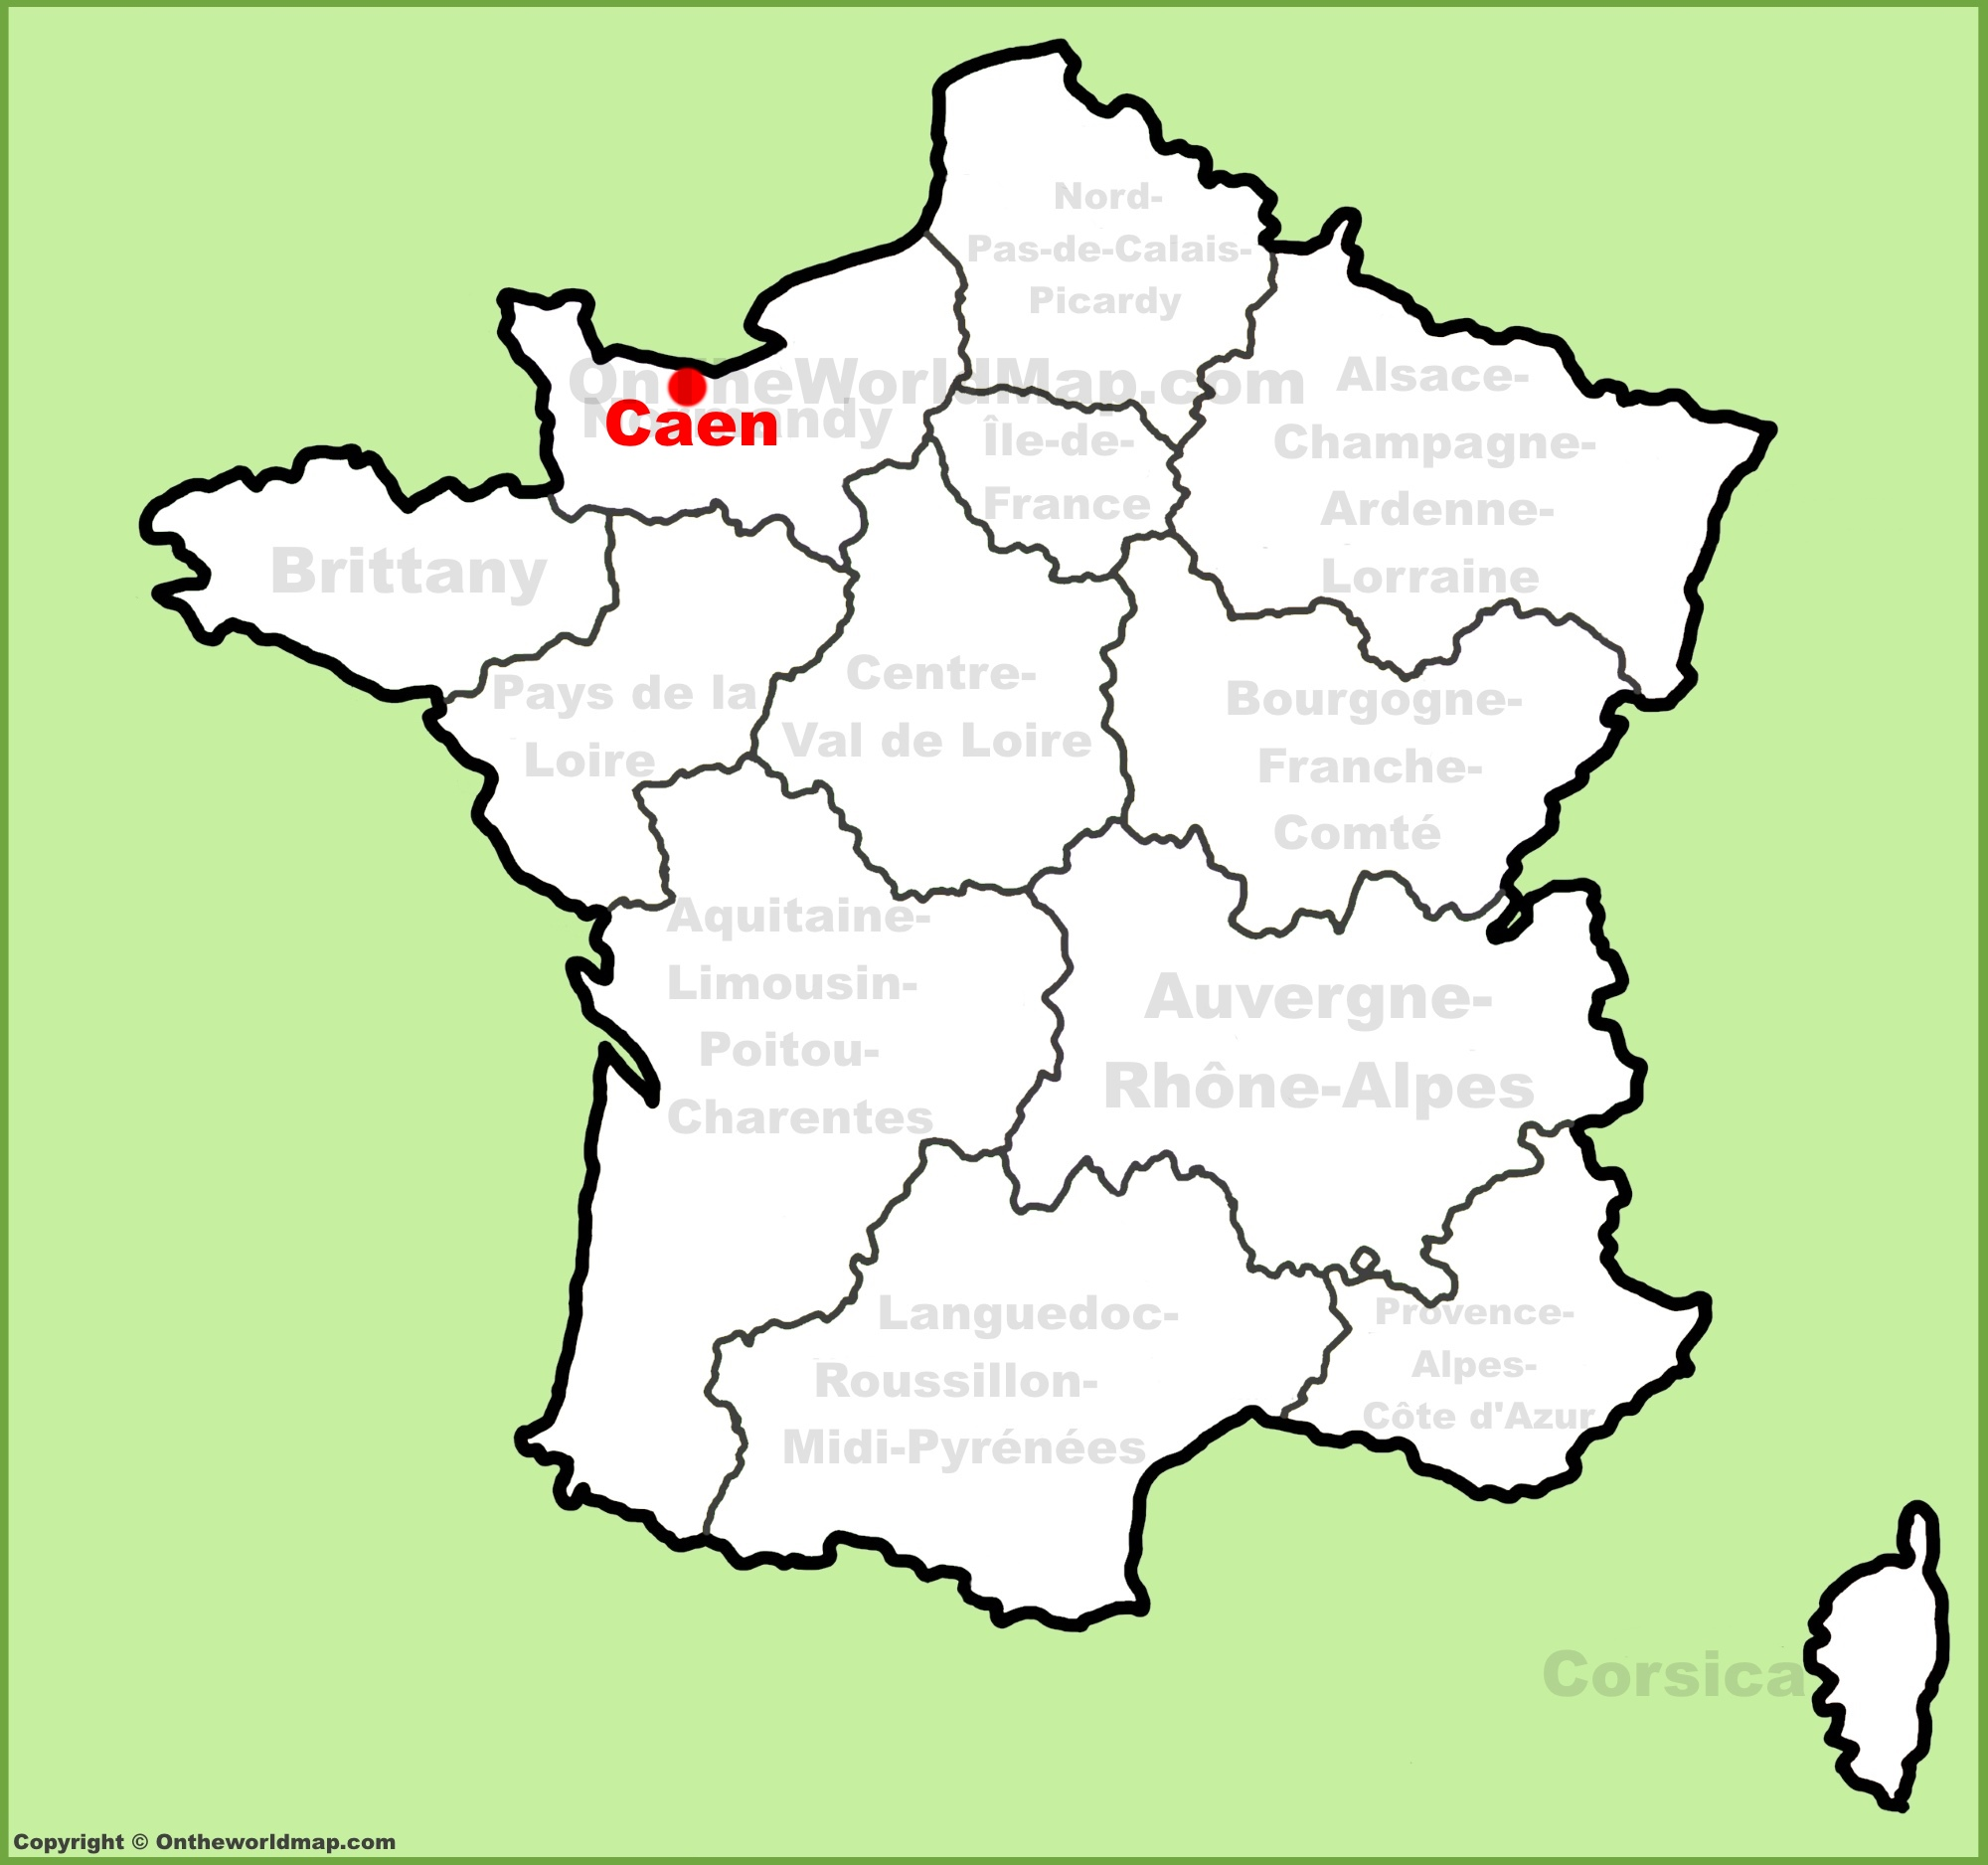 Caen location on the France map